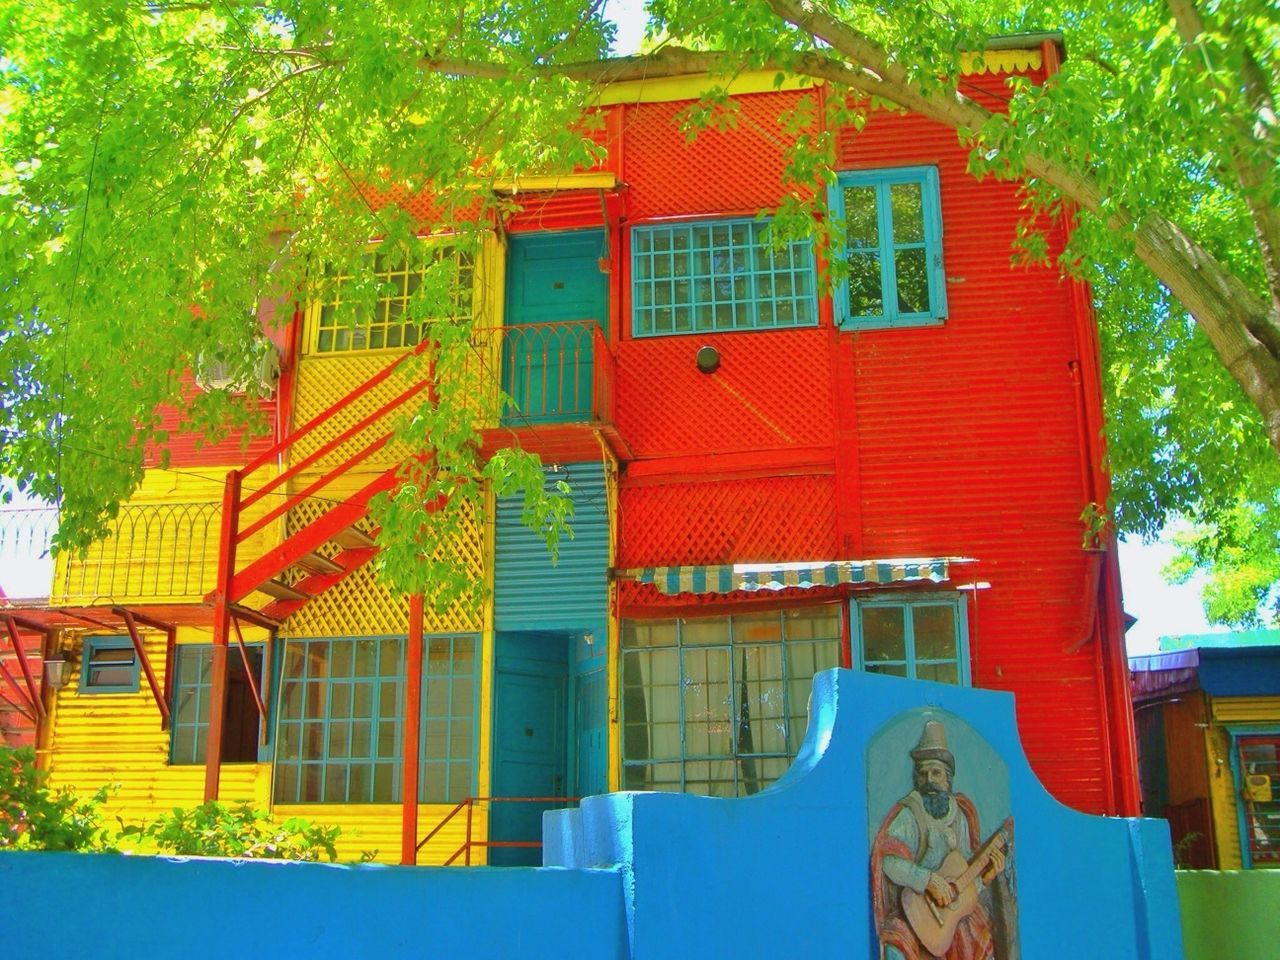 built structure, architecture, building exterior, tree, no people, house, low angle view, day, red, multi colored, outdoors